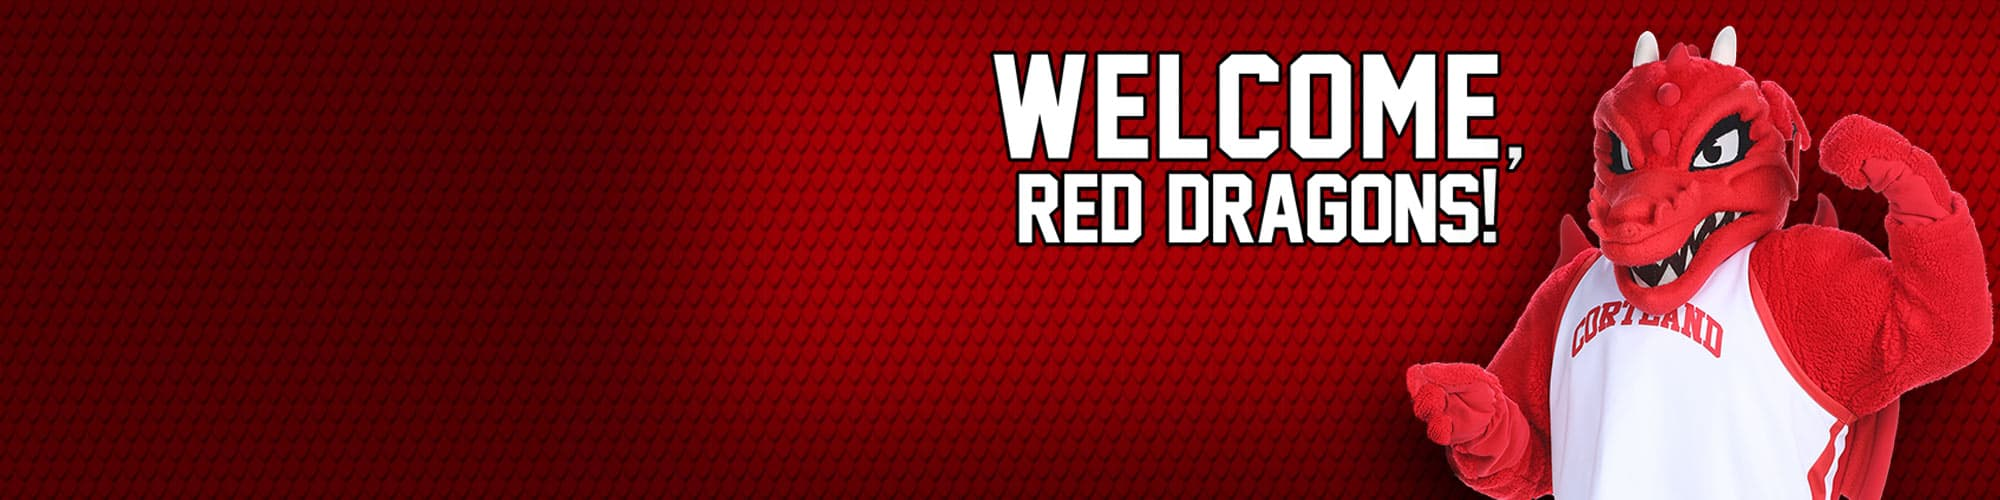 Blaze the red dragon mascot with text message: Welcome, Red Dragons!